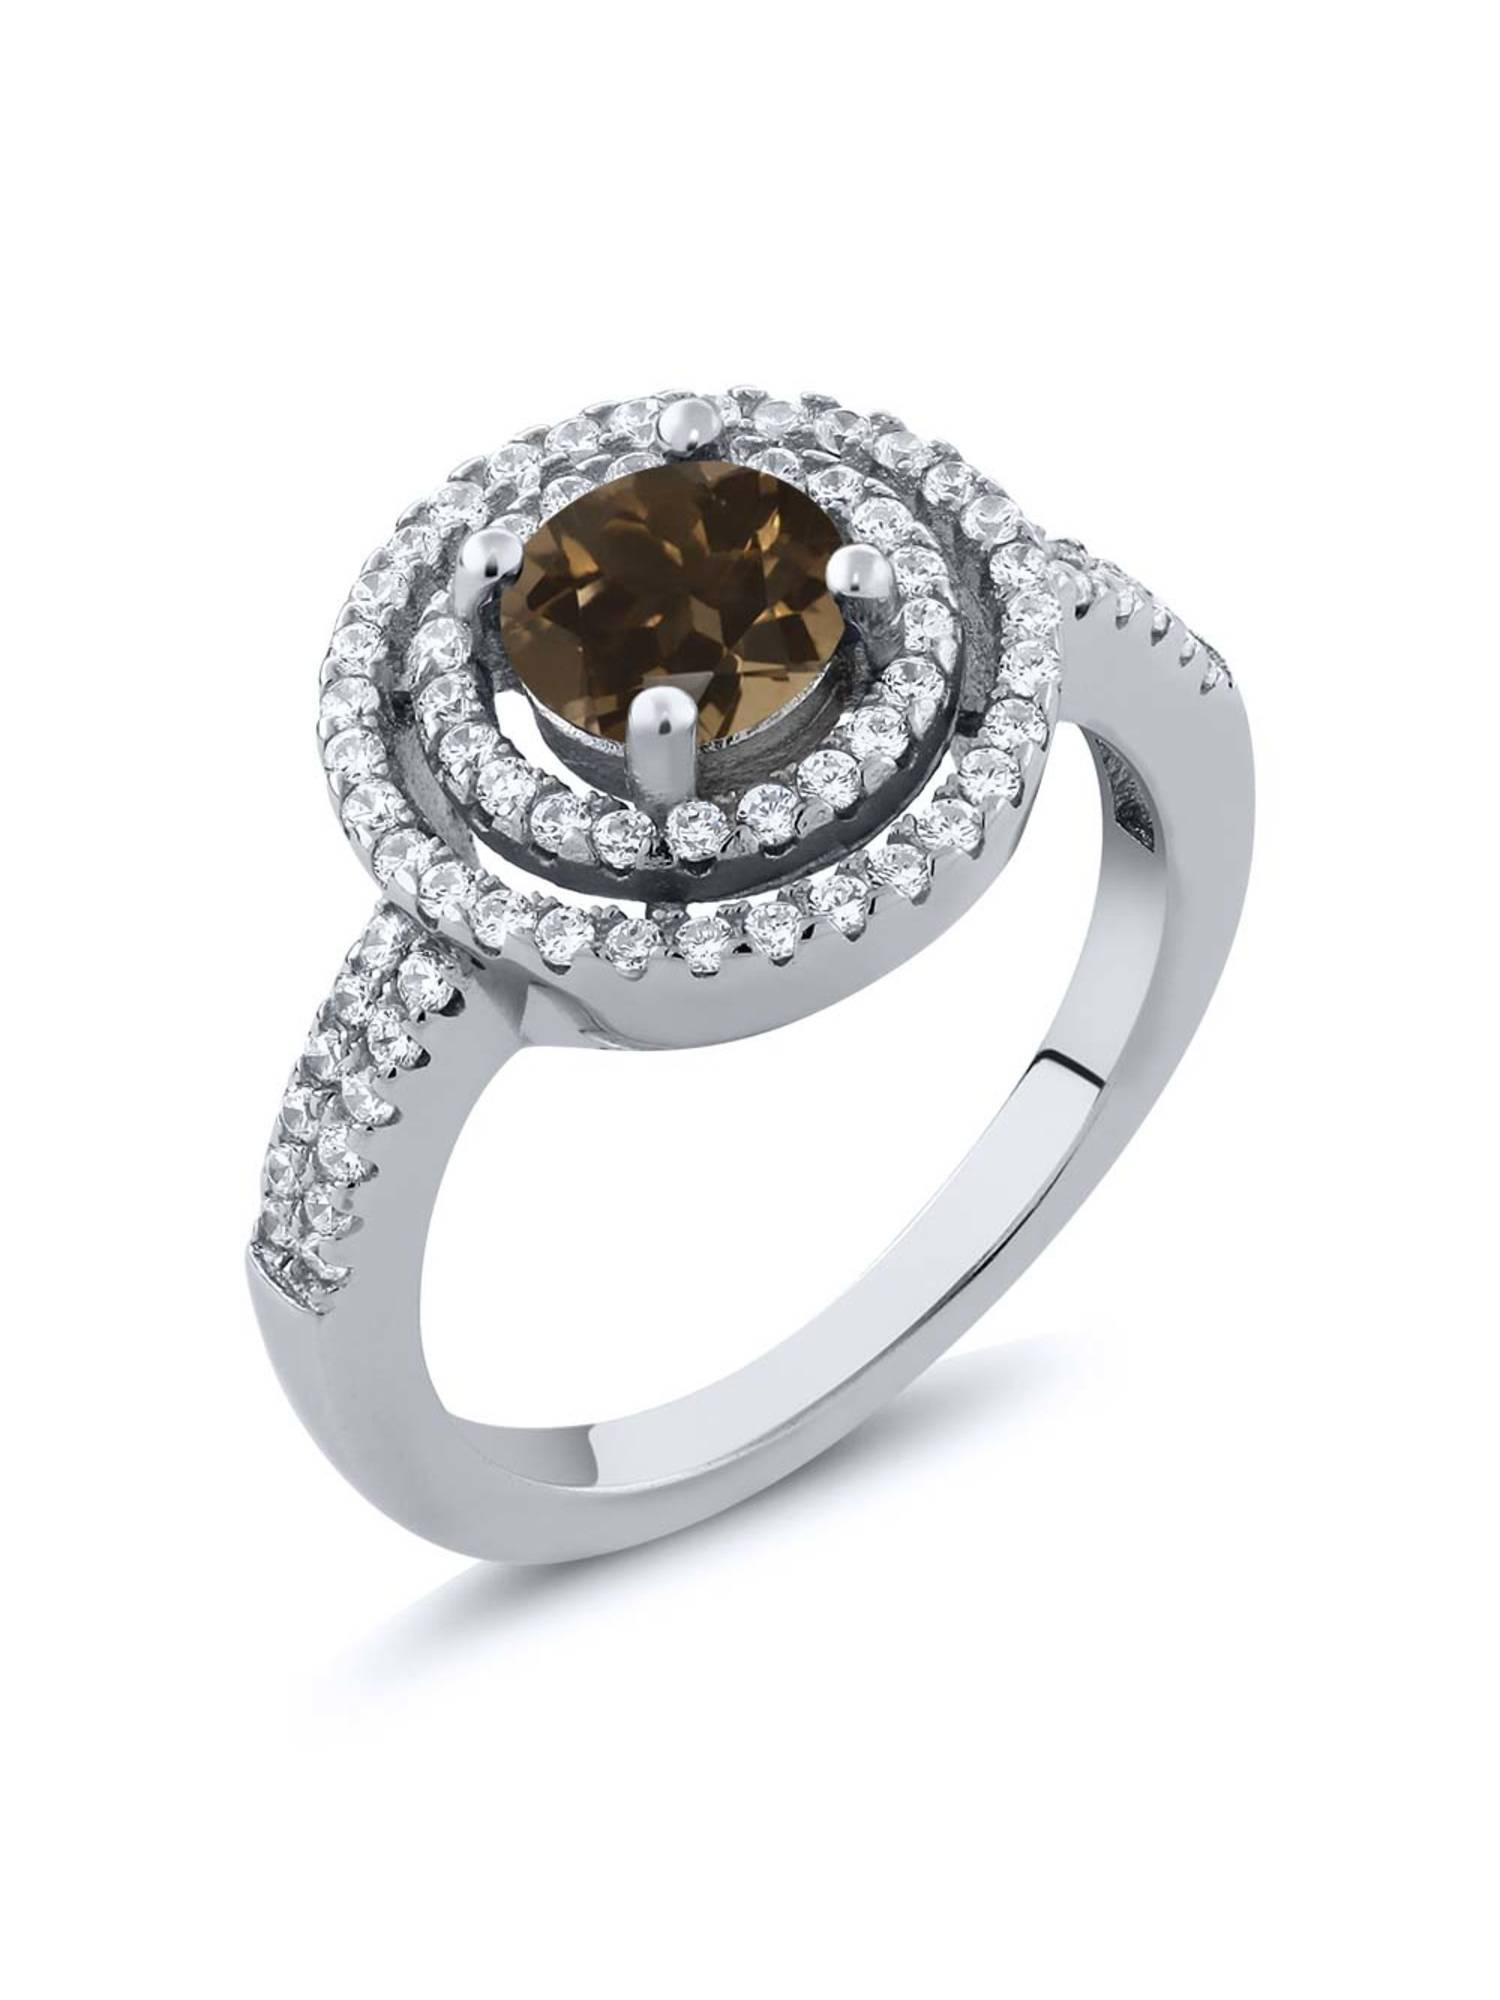 1.76 Ct Round Brown Smoky Quartz 925 Sterling Silver Ring